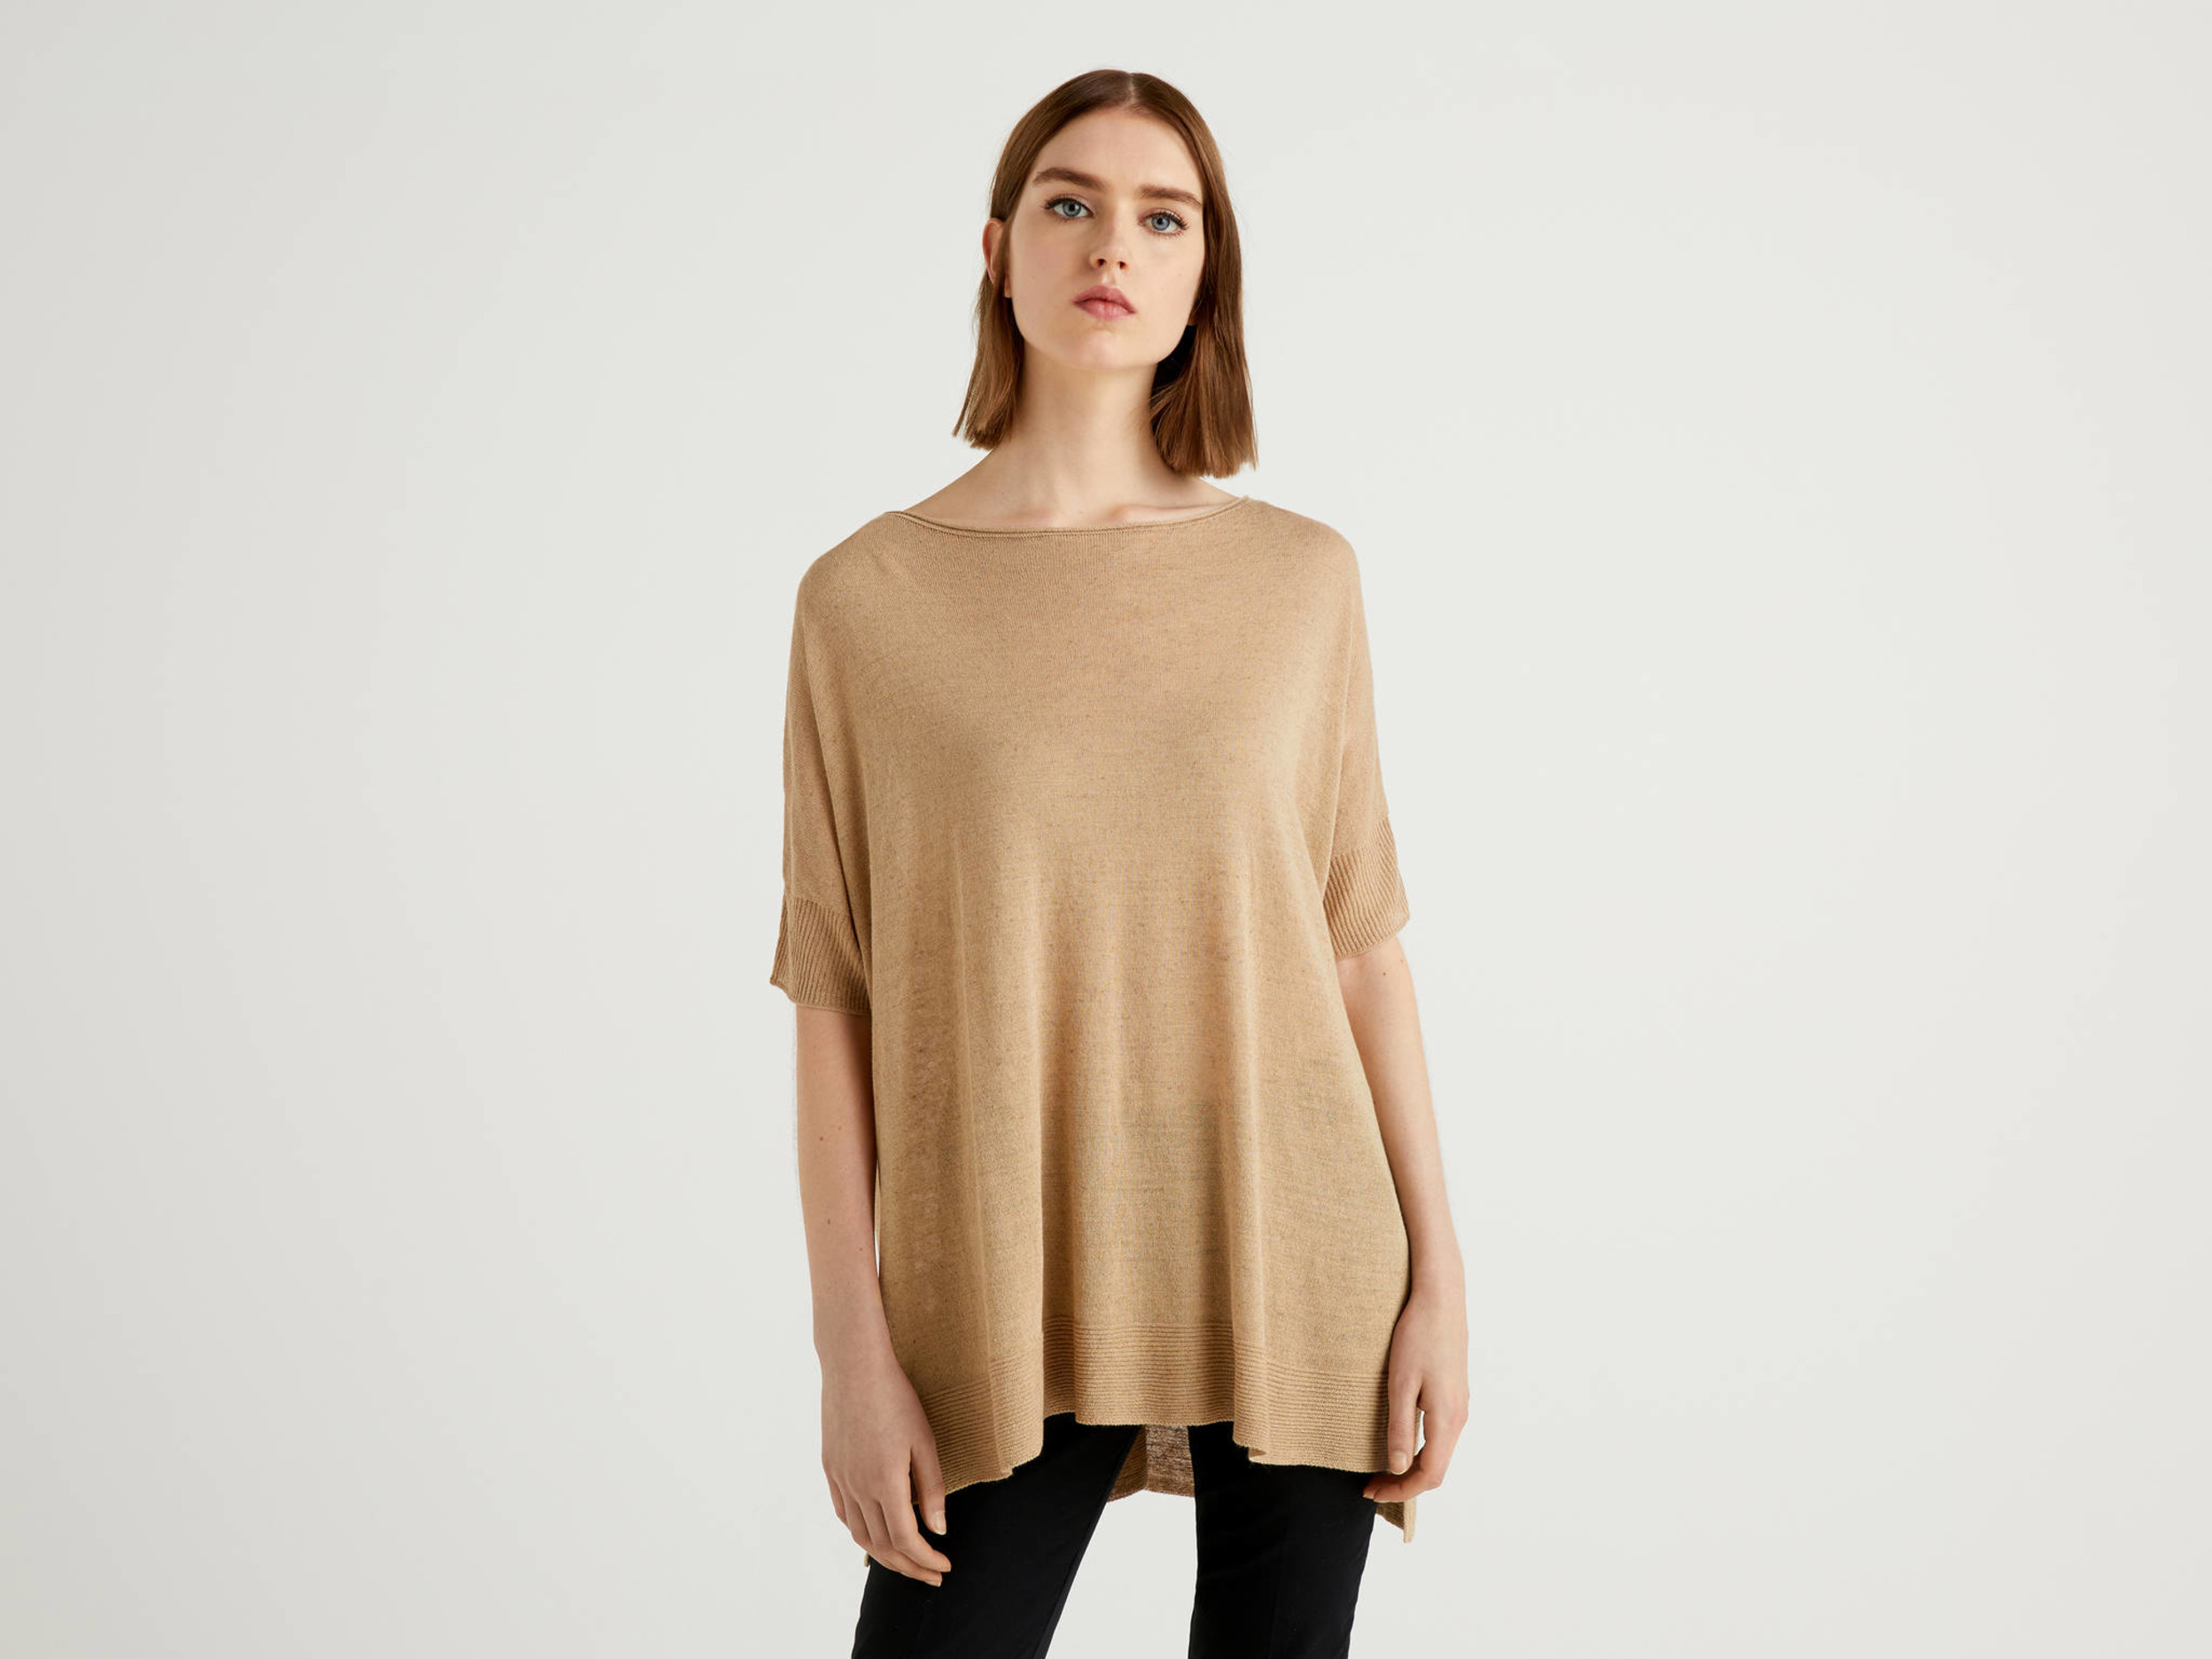 Benetton, Pull Oversize À Manches Courtes, taille S, Beige, Femme